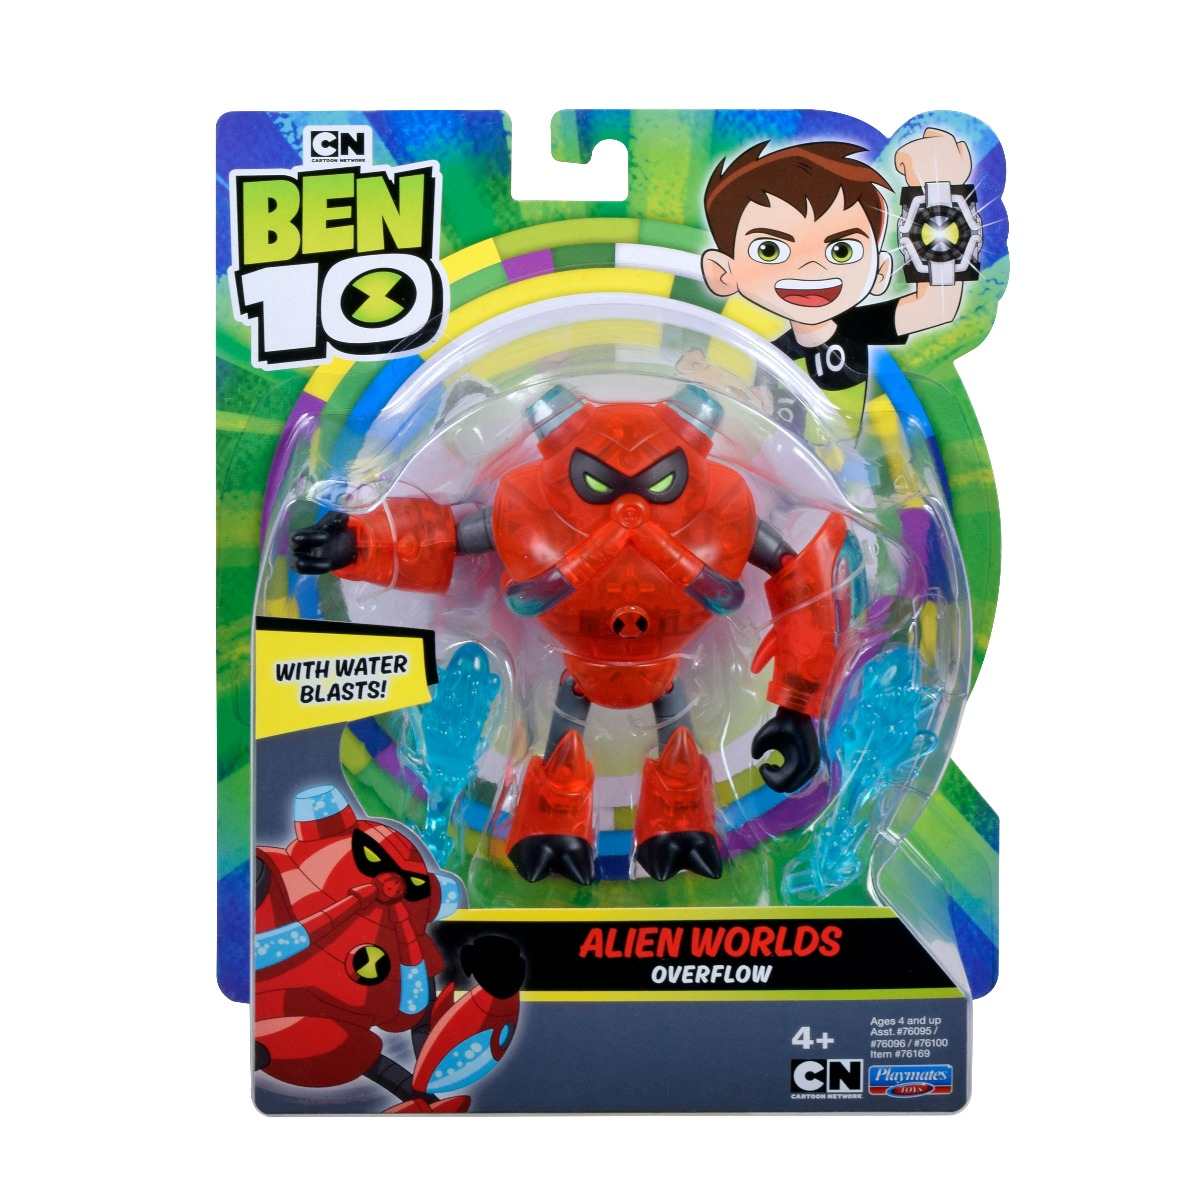 Figurina Ben 10, Alien Worlds, Overflow, 12 cm, 76169